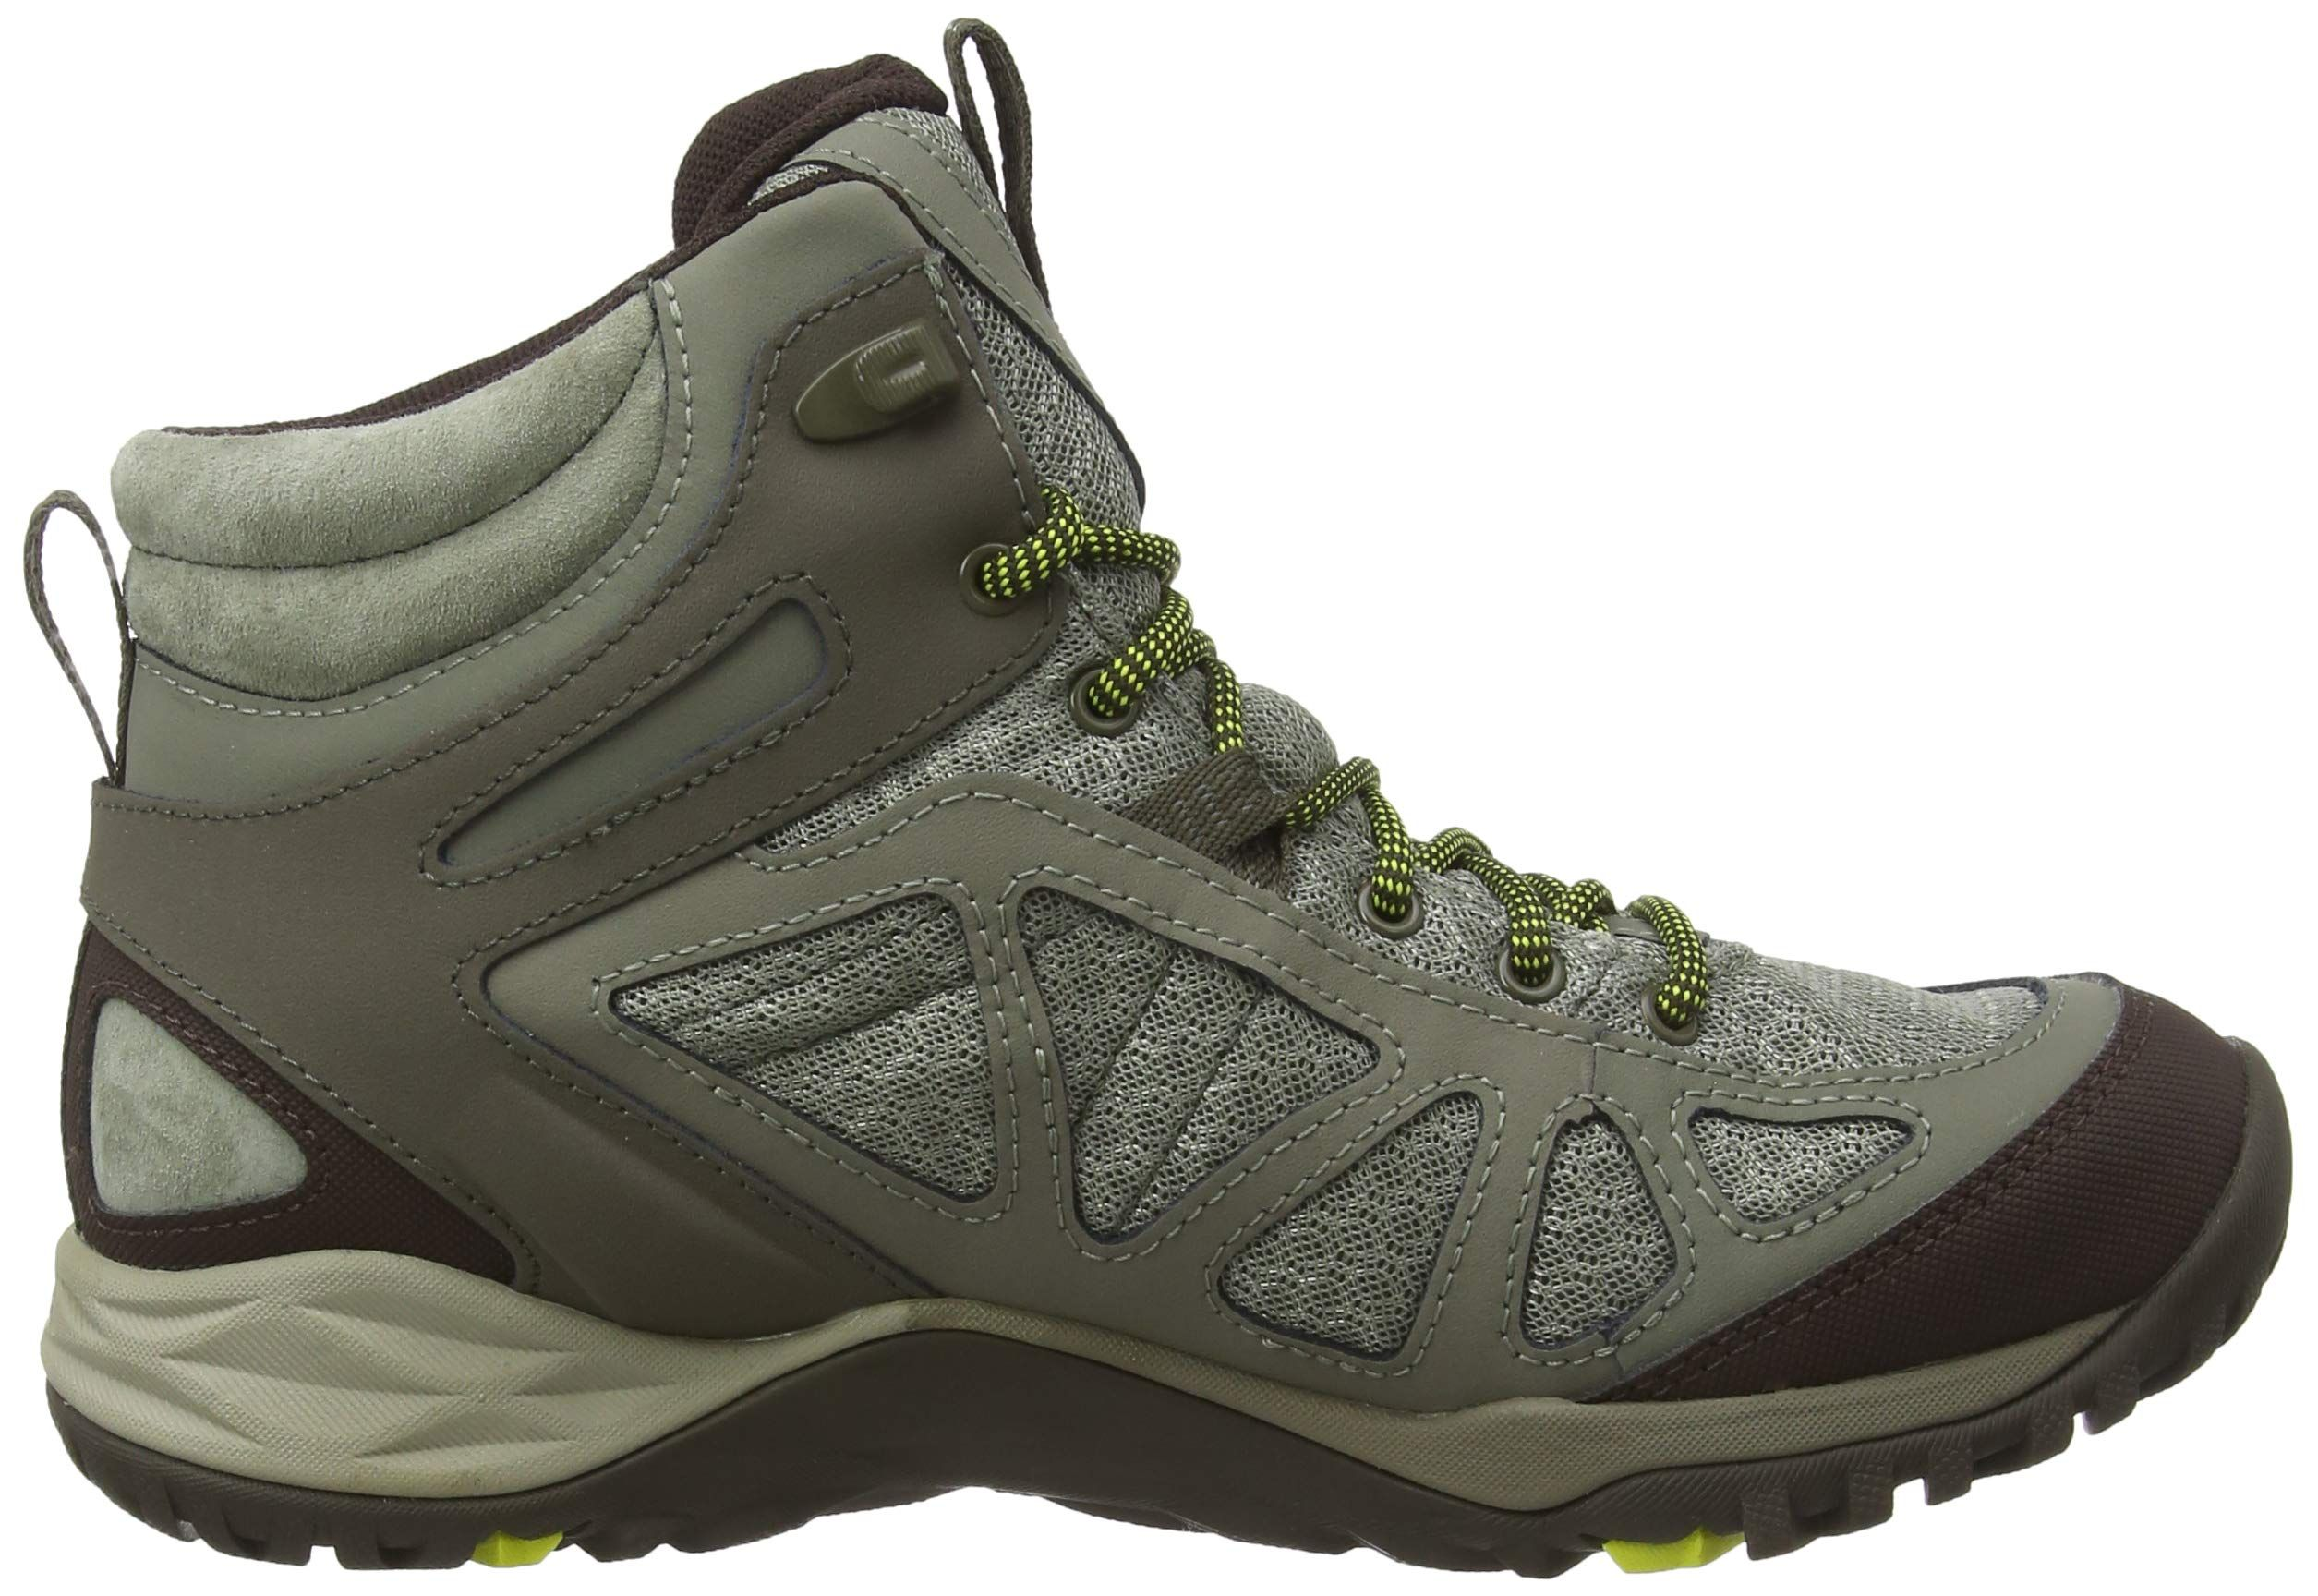 b1351aeb4850bd Merrell Womens Siren Sport Q2 MID GTX Boots Dusty Olive UK6   EU39   US8.5  GoreTEX     Read more at the image link-affiliate link.   campingandhikingshoes